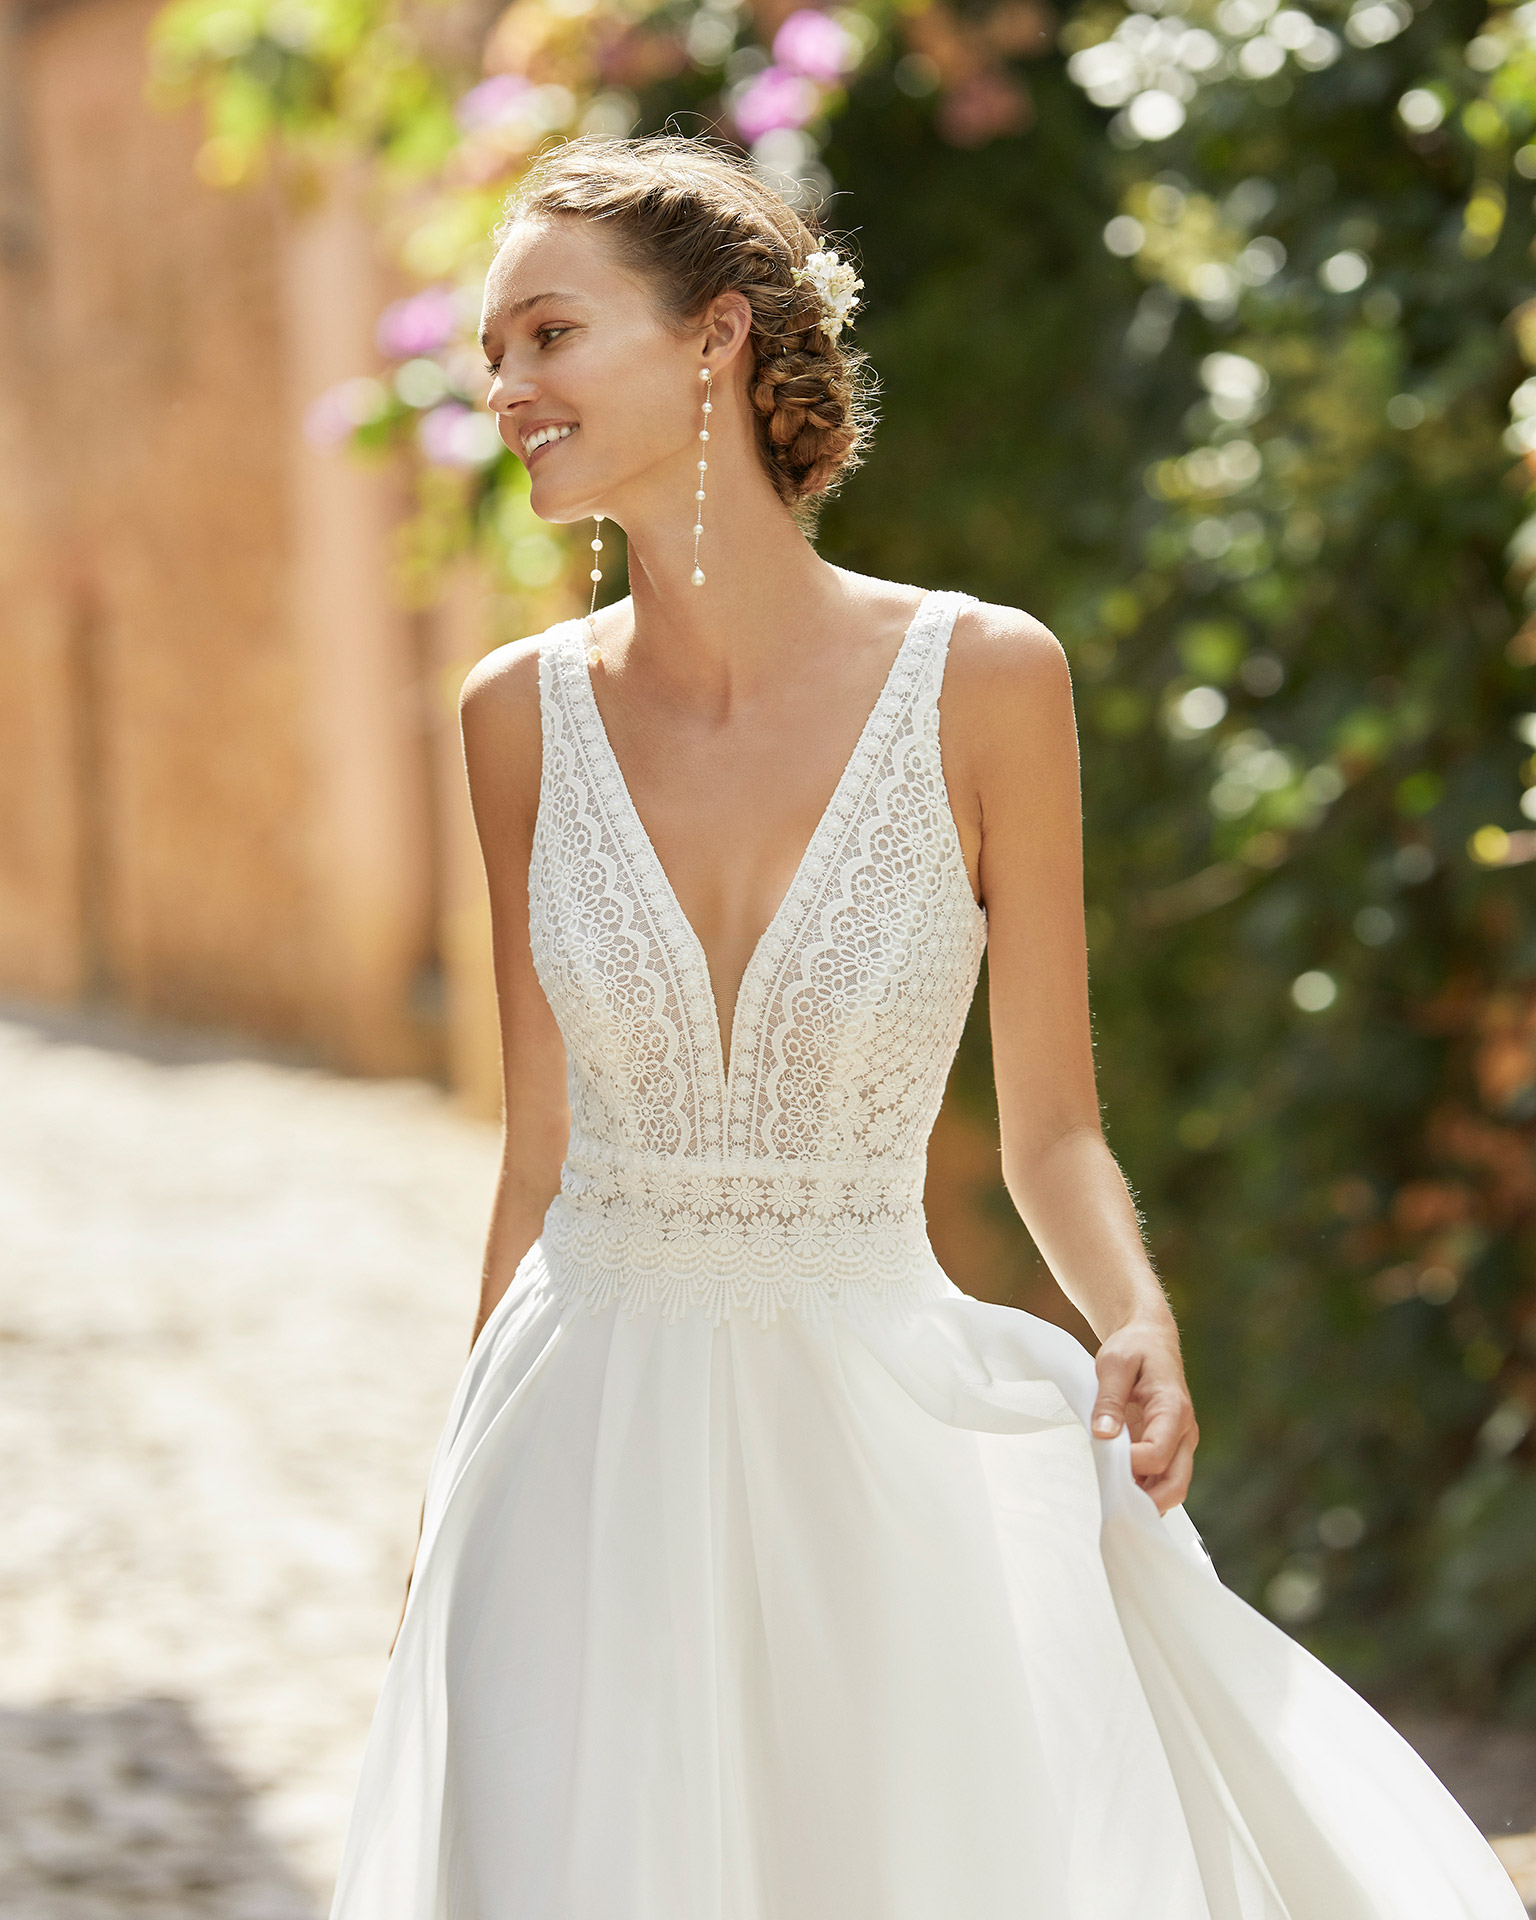 Delicate ballgown-style wedding dress with a lace bodice; with a V-neck, square back and pleated skirt. Unique Alma Novia model in georgette. 2022 ALMANOVIA Collection.